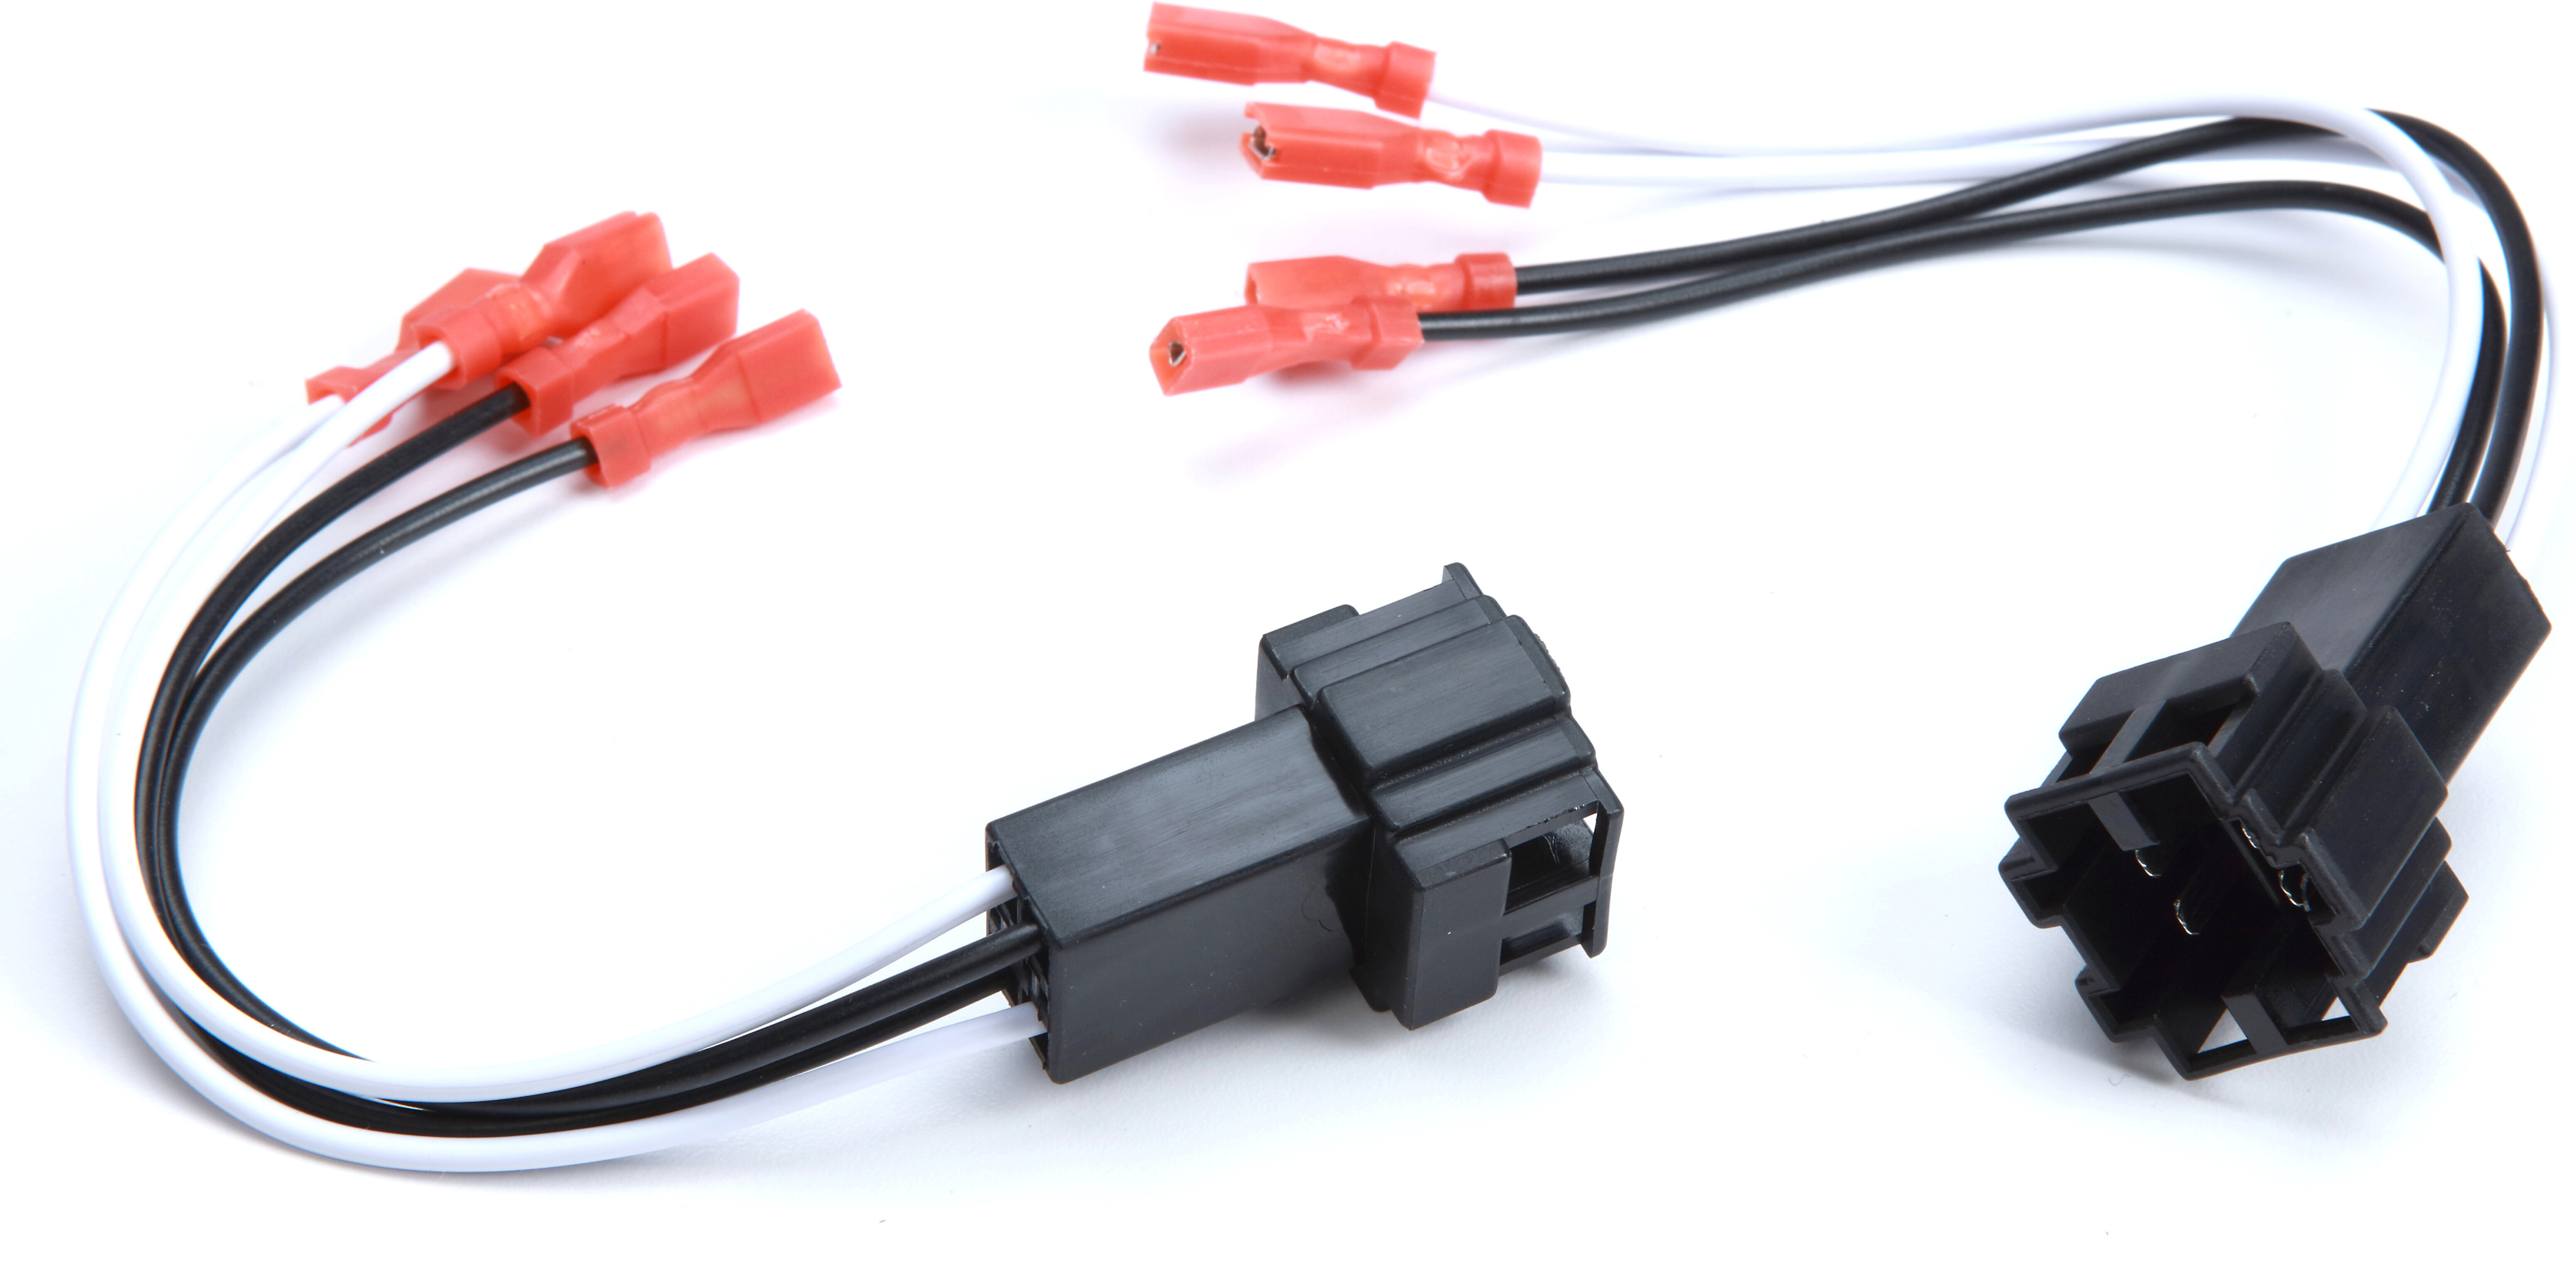 Metra 72-9002 Speaker Wiring Harness Fits select European-made vehicles —  connect new speakers to factory wiring plugs at CrutchfieldCrutchfield